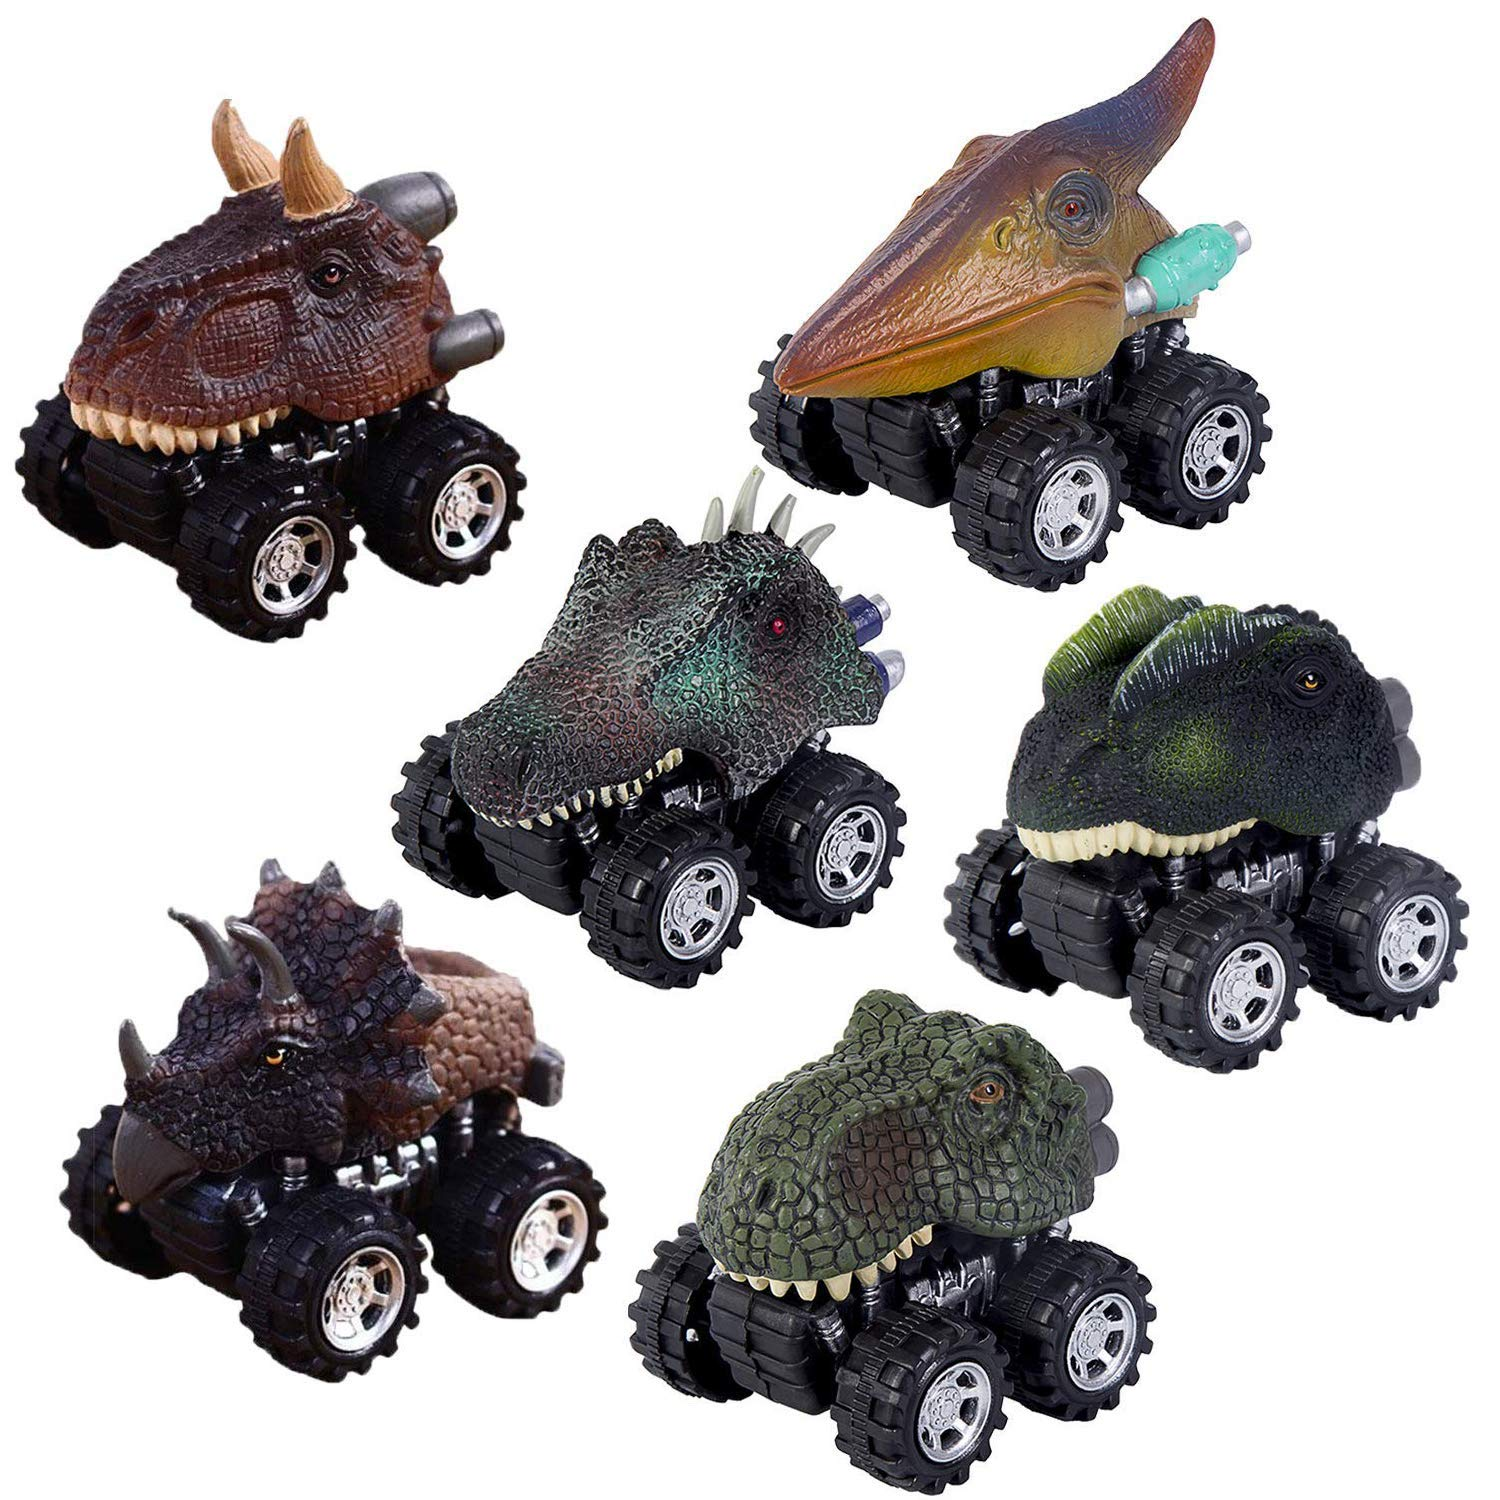 Valleycomfy 6 Pack Pull Back Dinosaur Cars Toys Toys for 2-9 Year Old Boys - Dinosaur Vehicles Toys with Big Tire Wheel for Kids Toddlers Party Supplies Favors